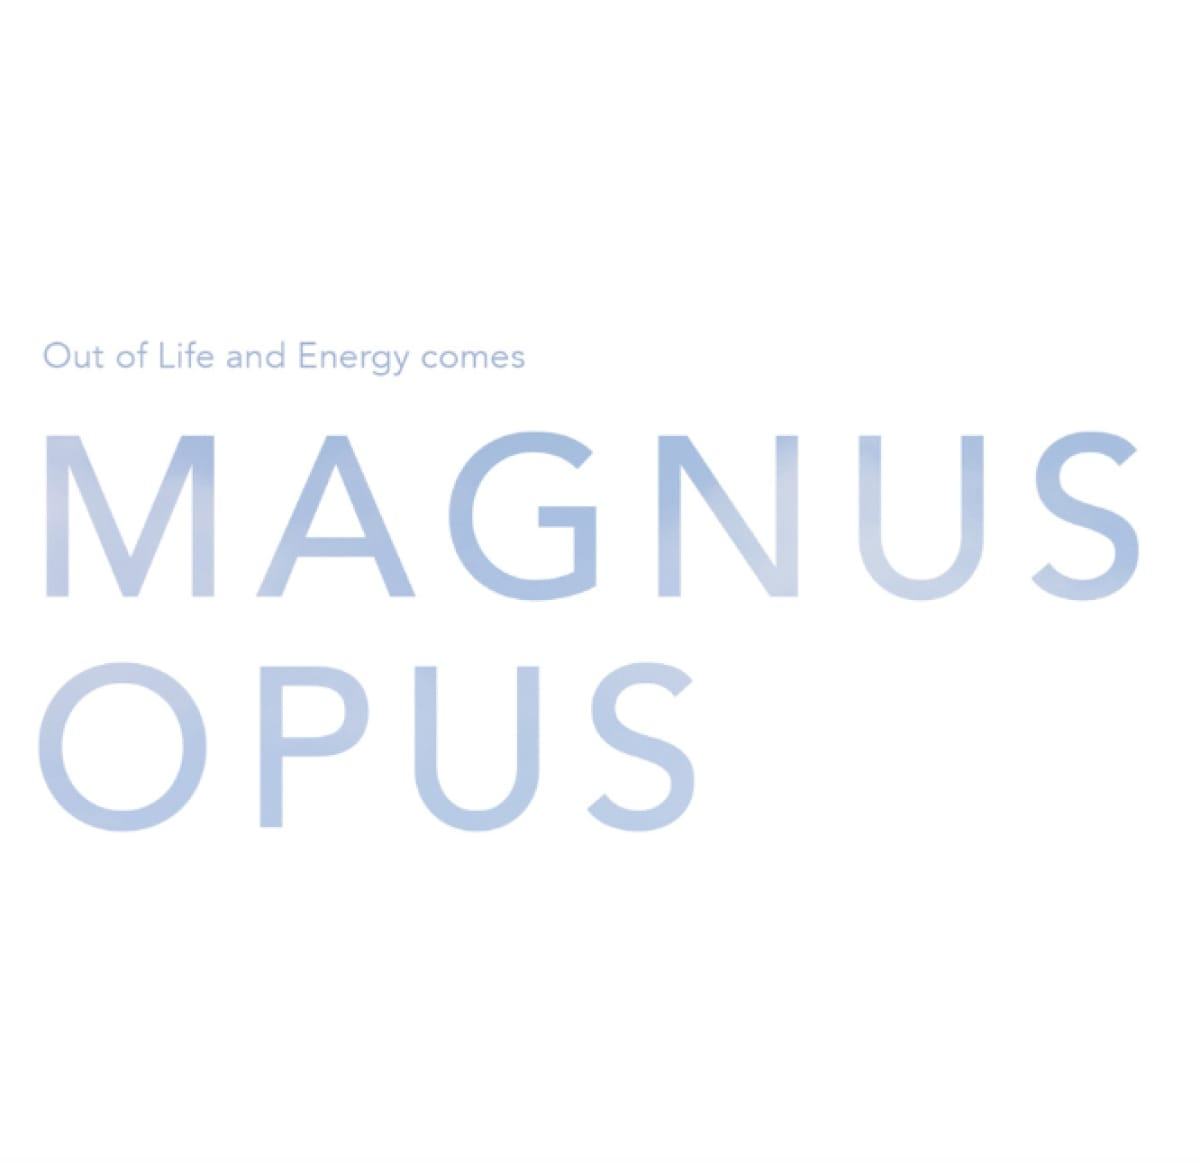 Richard MacDonald: Magnus Opus